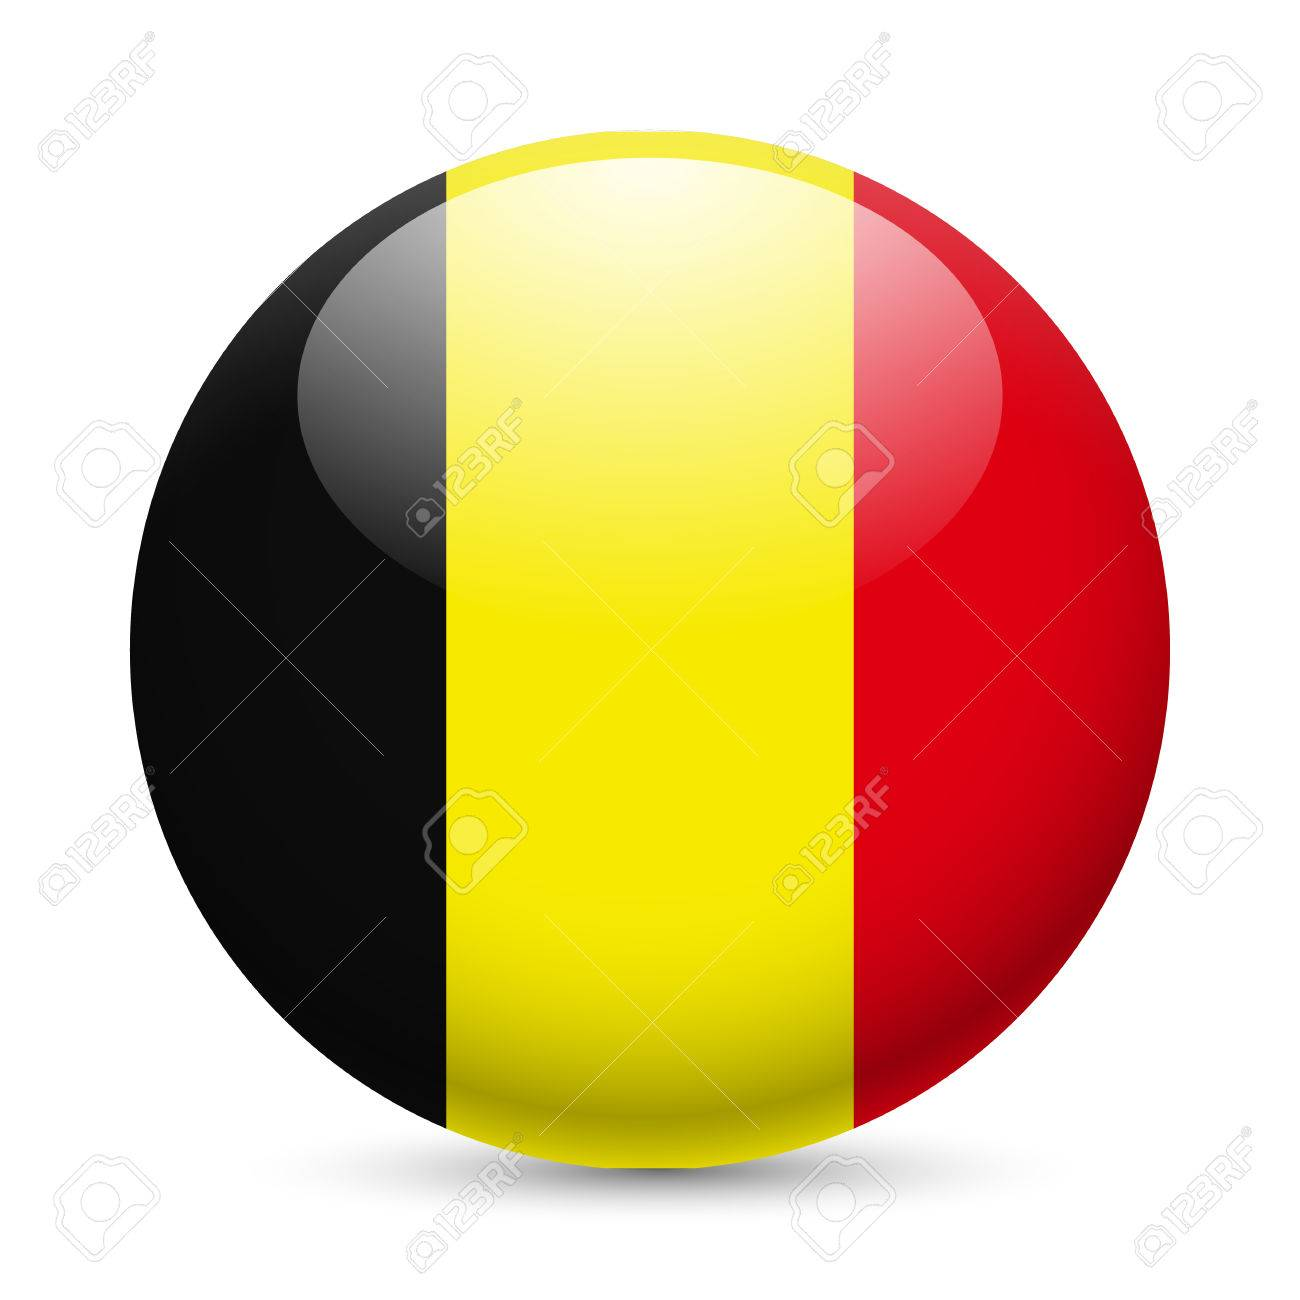 Flag of Belgium as round glossy icon. Button with Belgian flag Stock Vector - 29186293